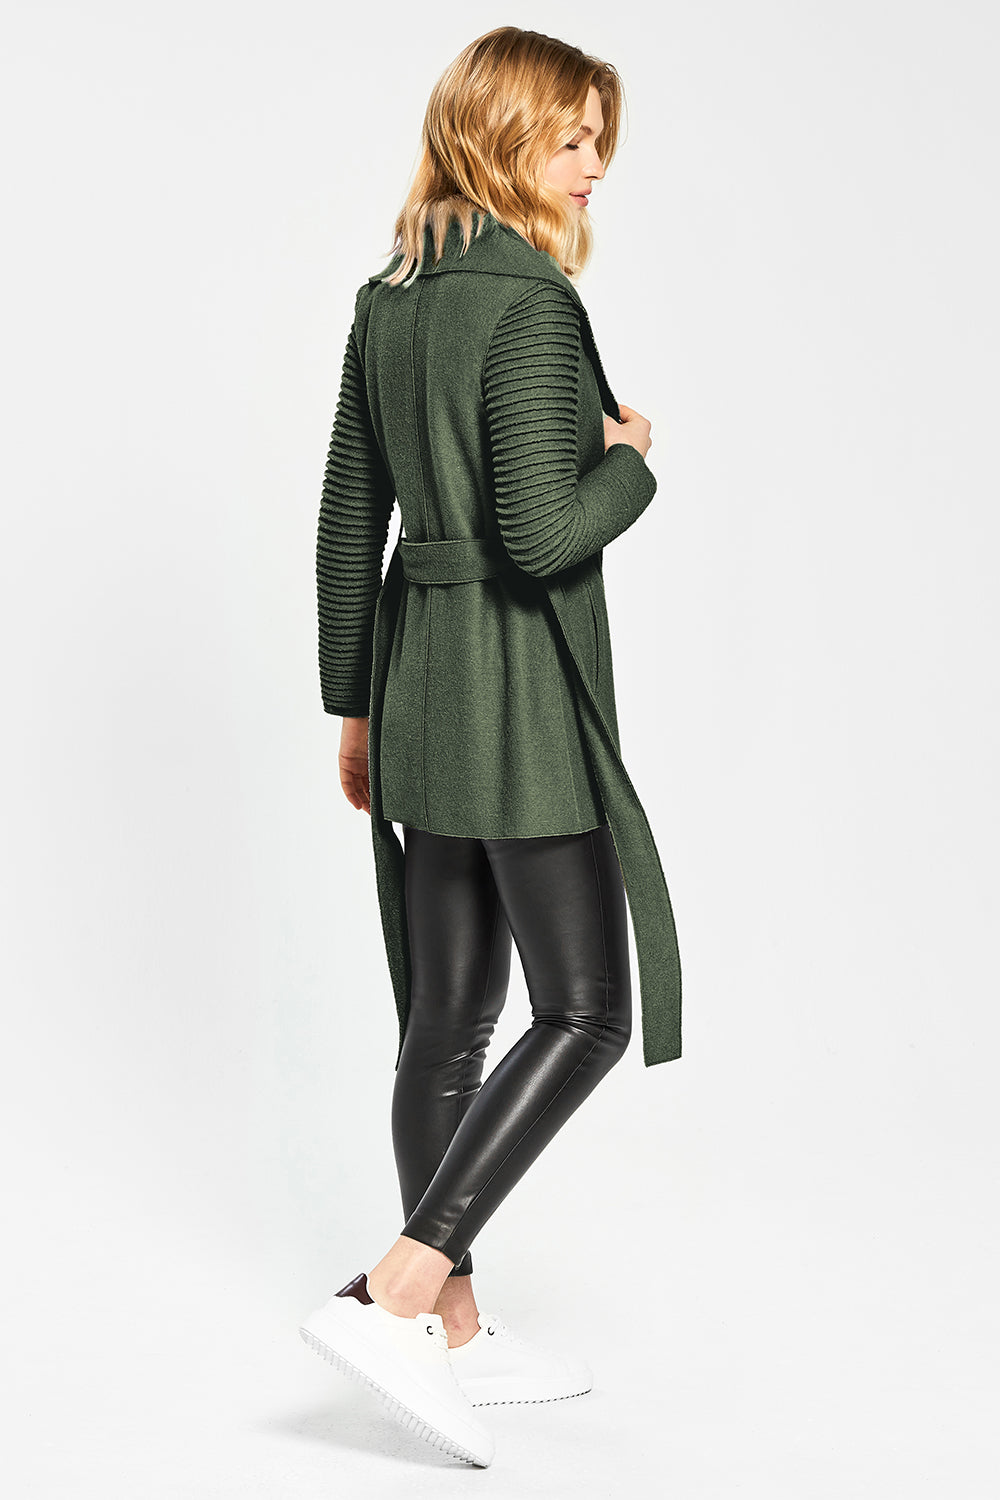 Sentaler Wrap Coat with Ribbed Sleeves featured in Superfine Alpaca and available in Army Green. Seen in Action.